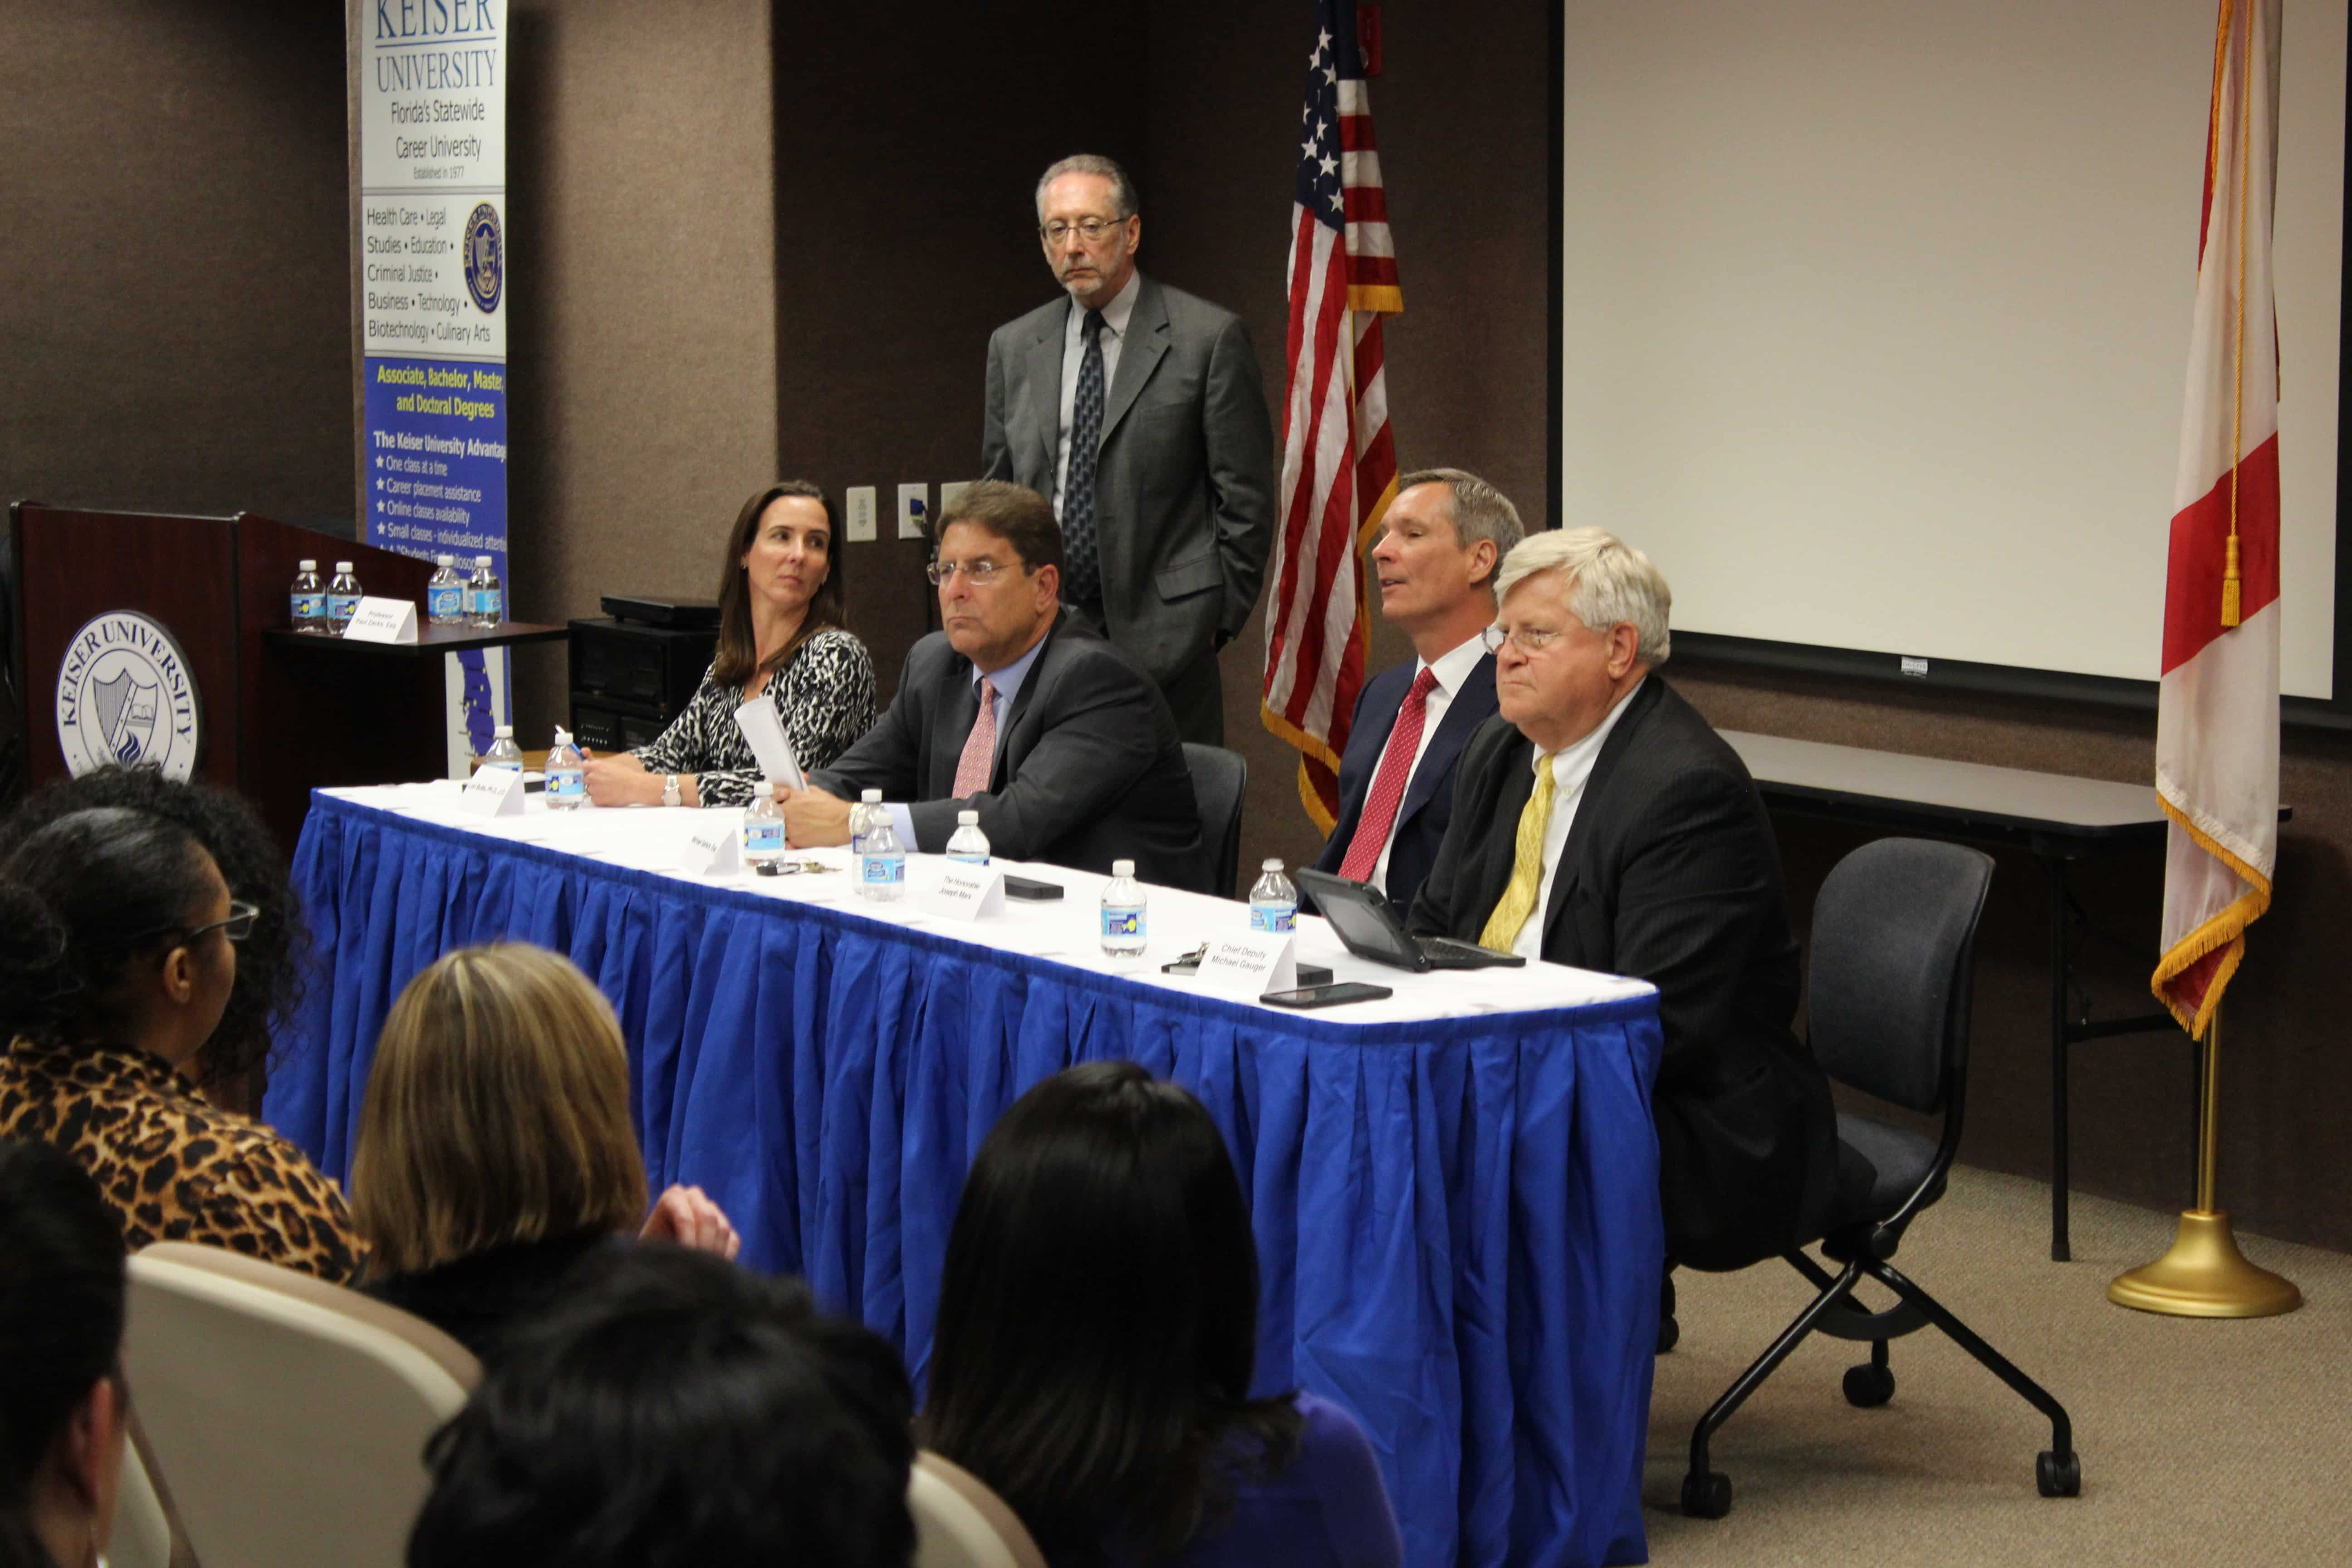 West Palm Beach Held a Law Day Symposium to Discuss Mental Health Issues Facing the Criminal Justice System